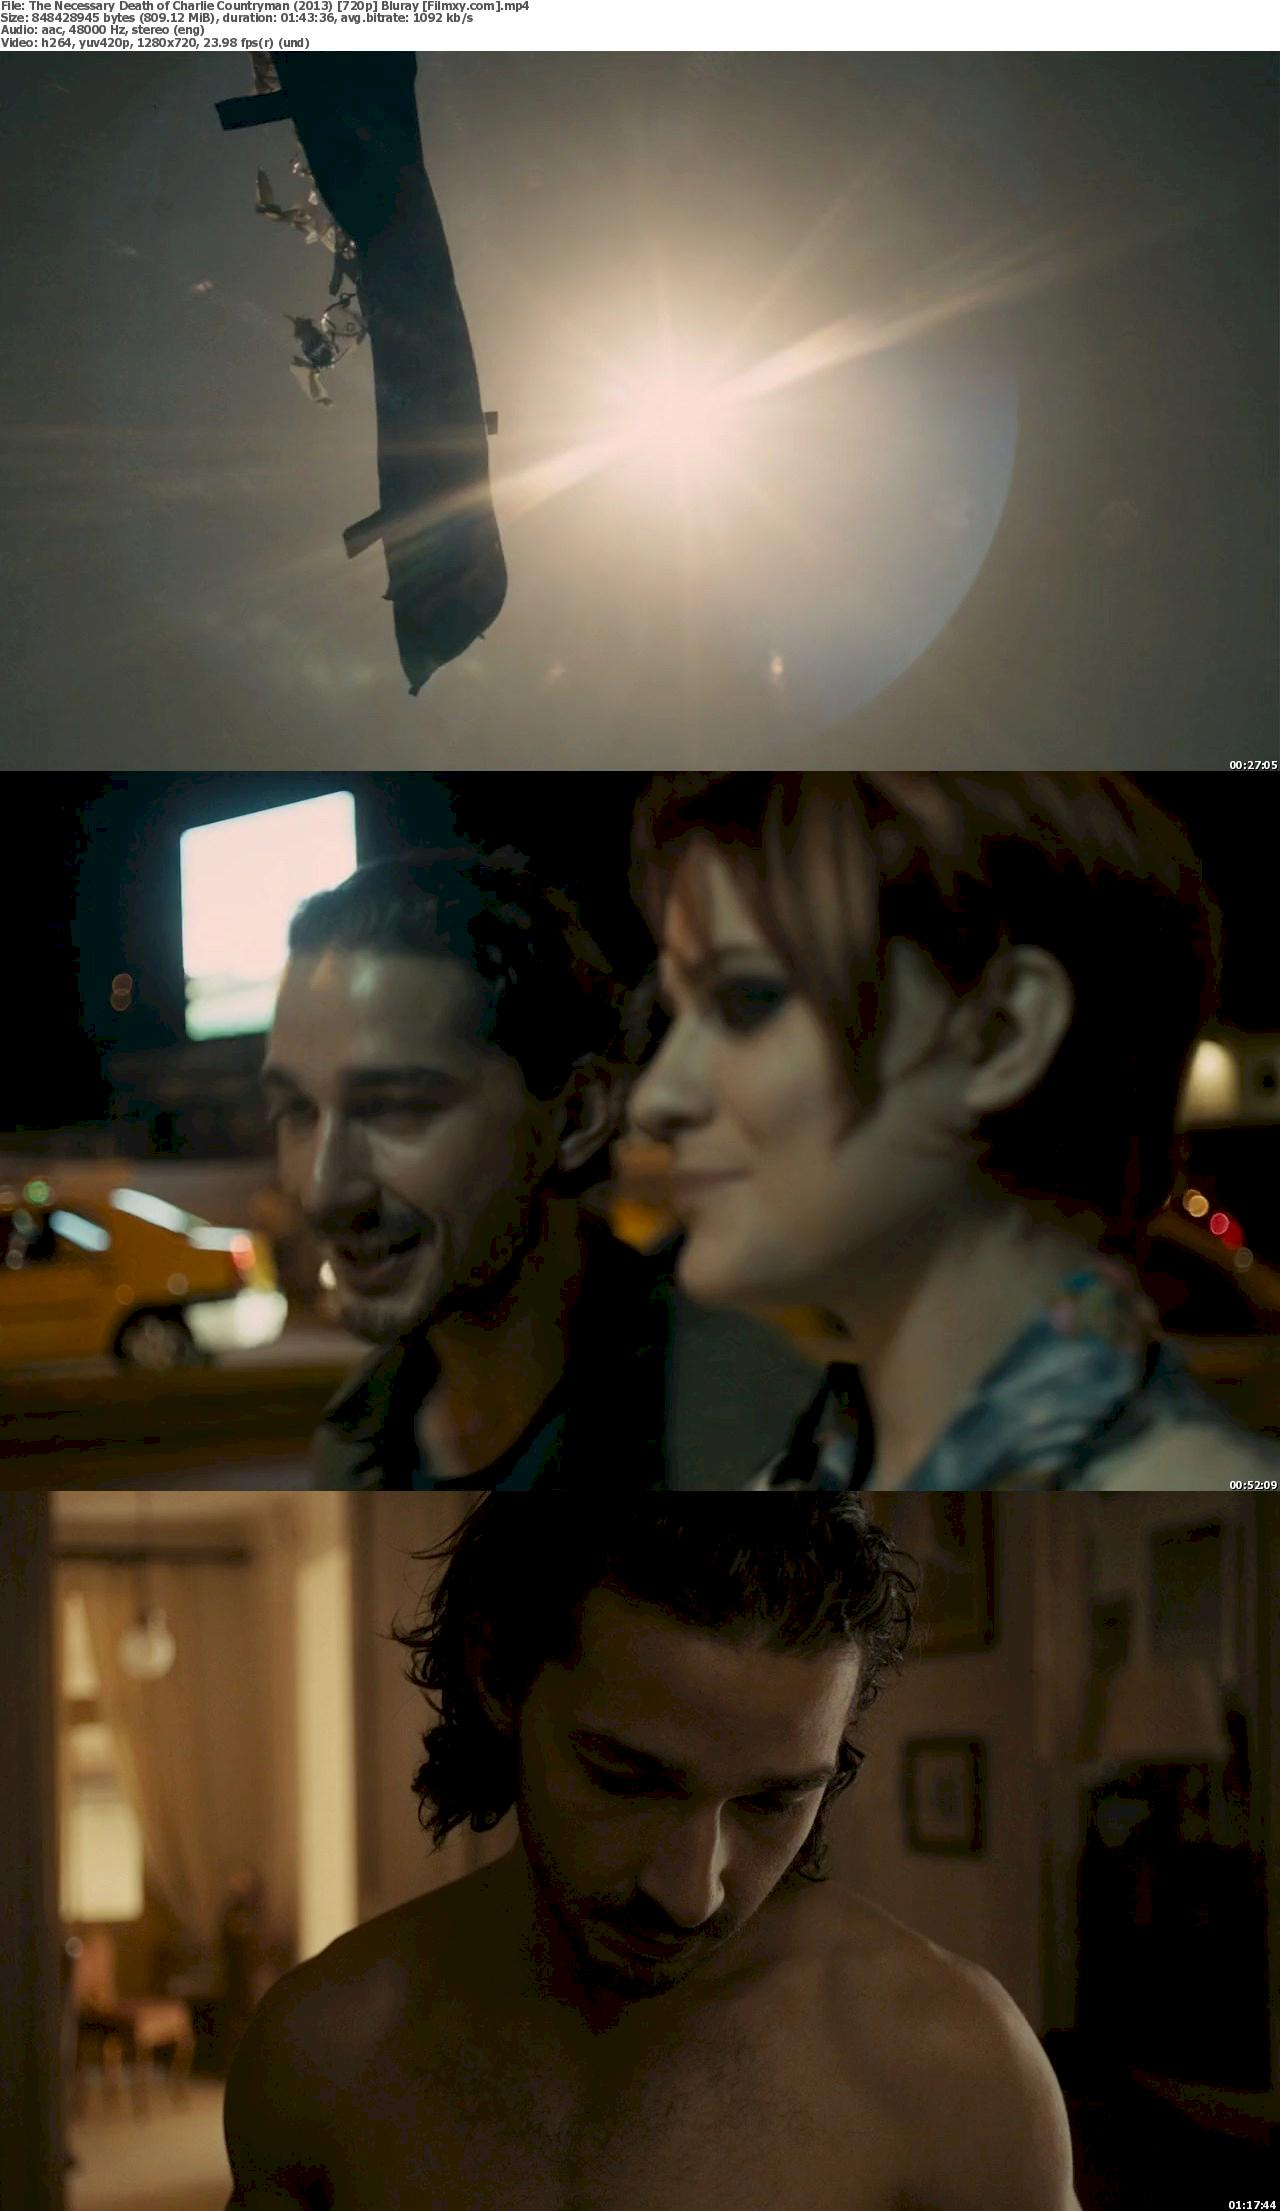 Charlie Countryman (2013) 720p & 1080p Bluray Free Download 720p Screenshot